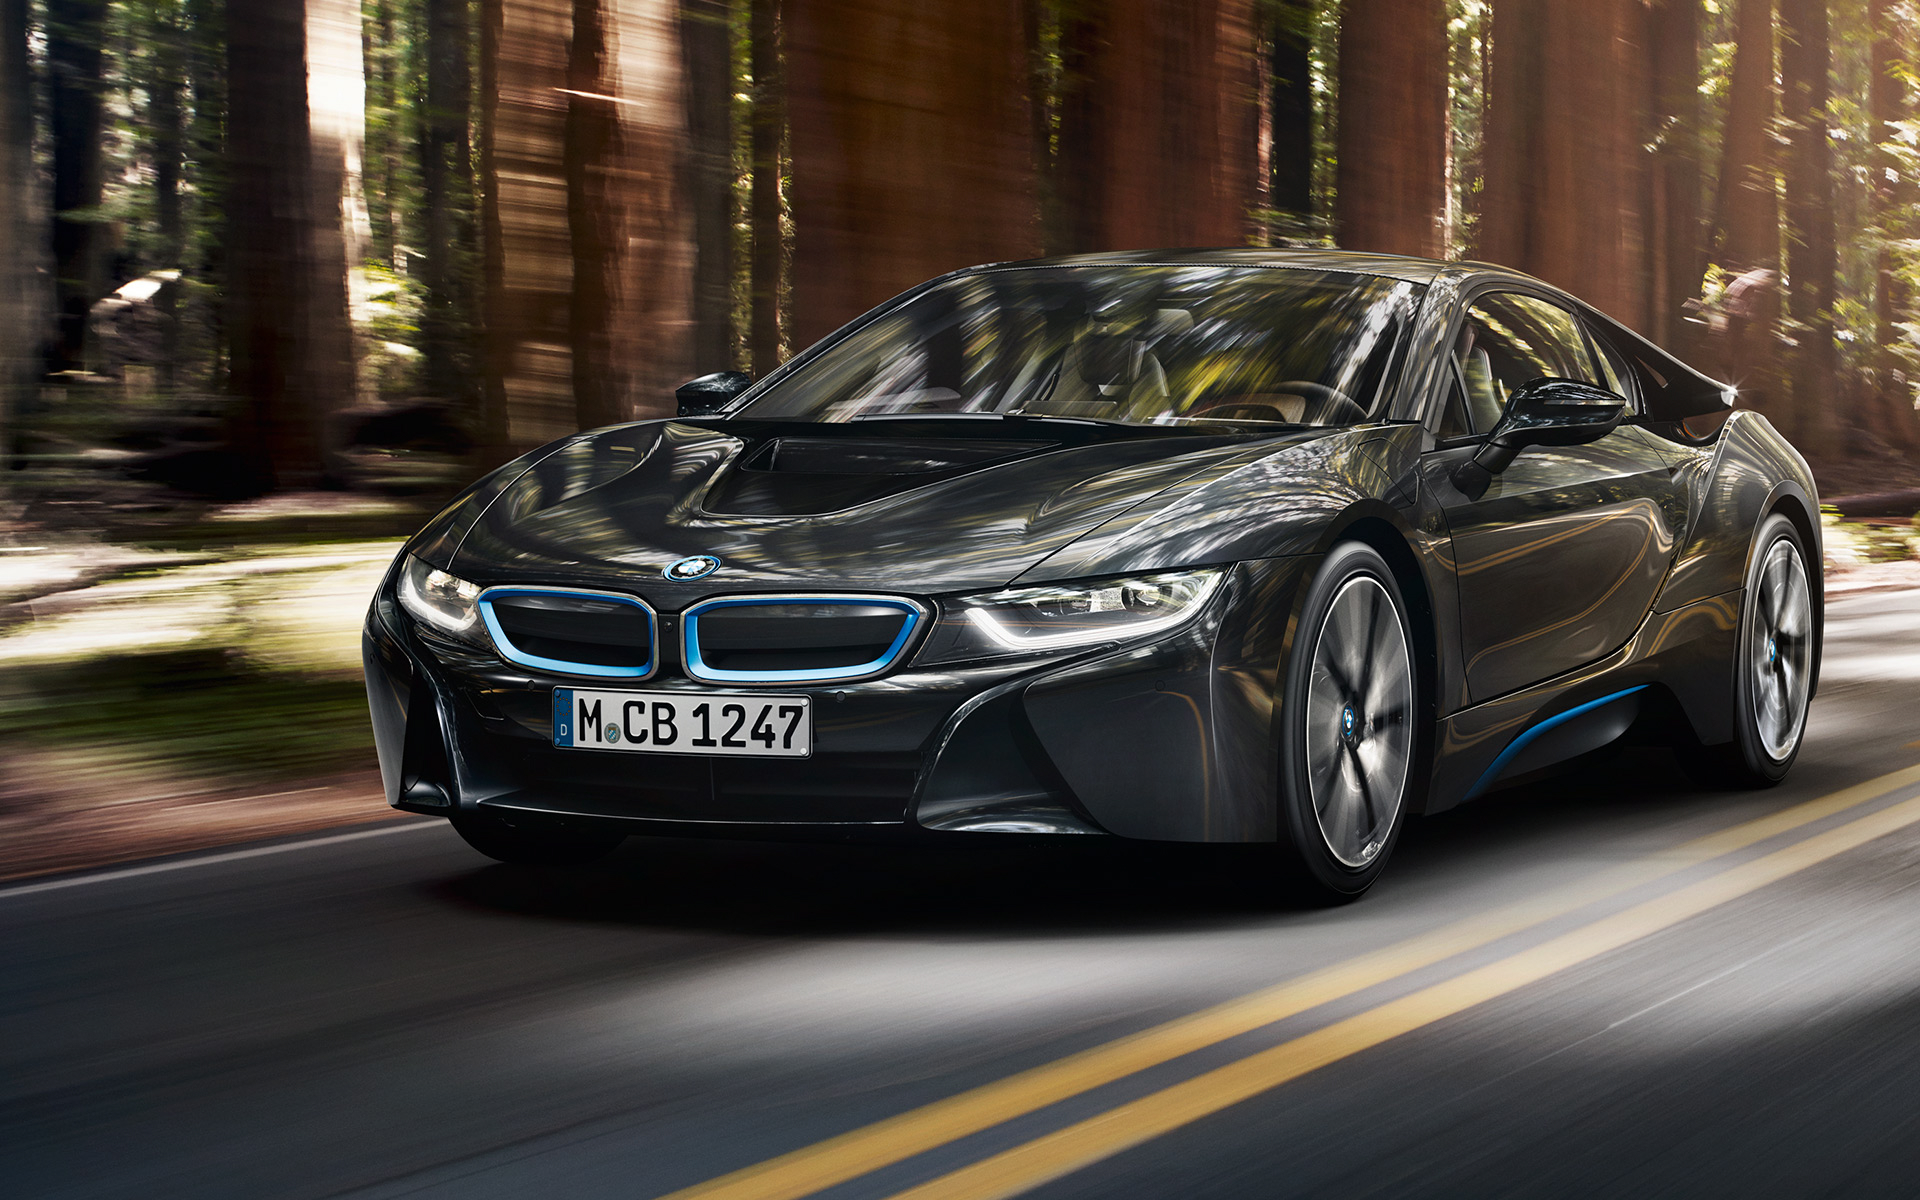 BMW i8 Protonic Frozen Black wallpaper14